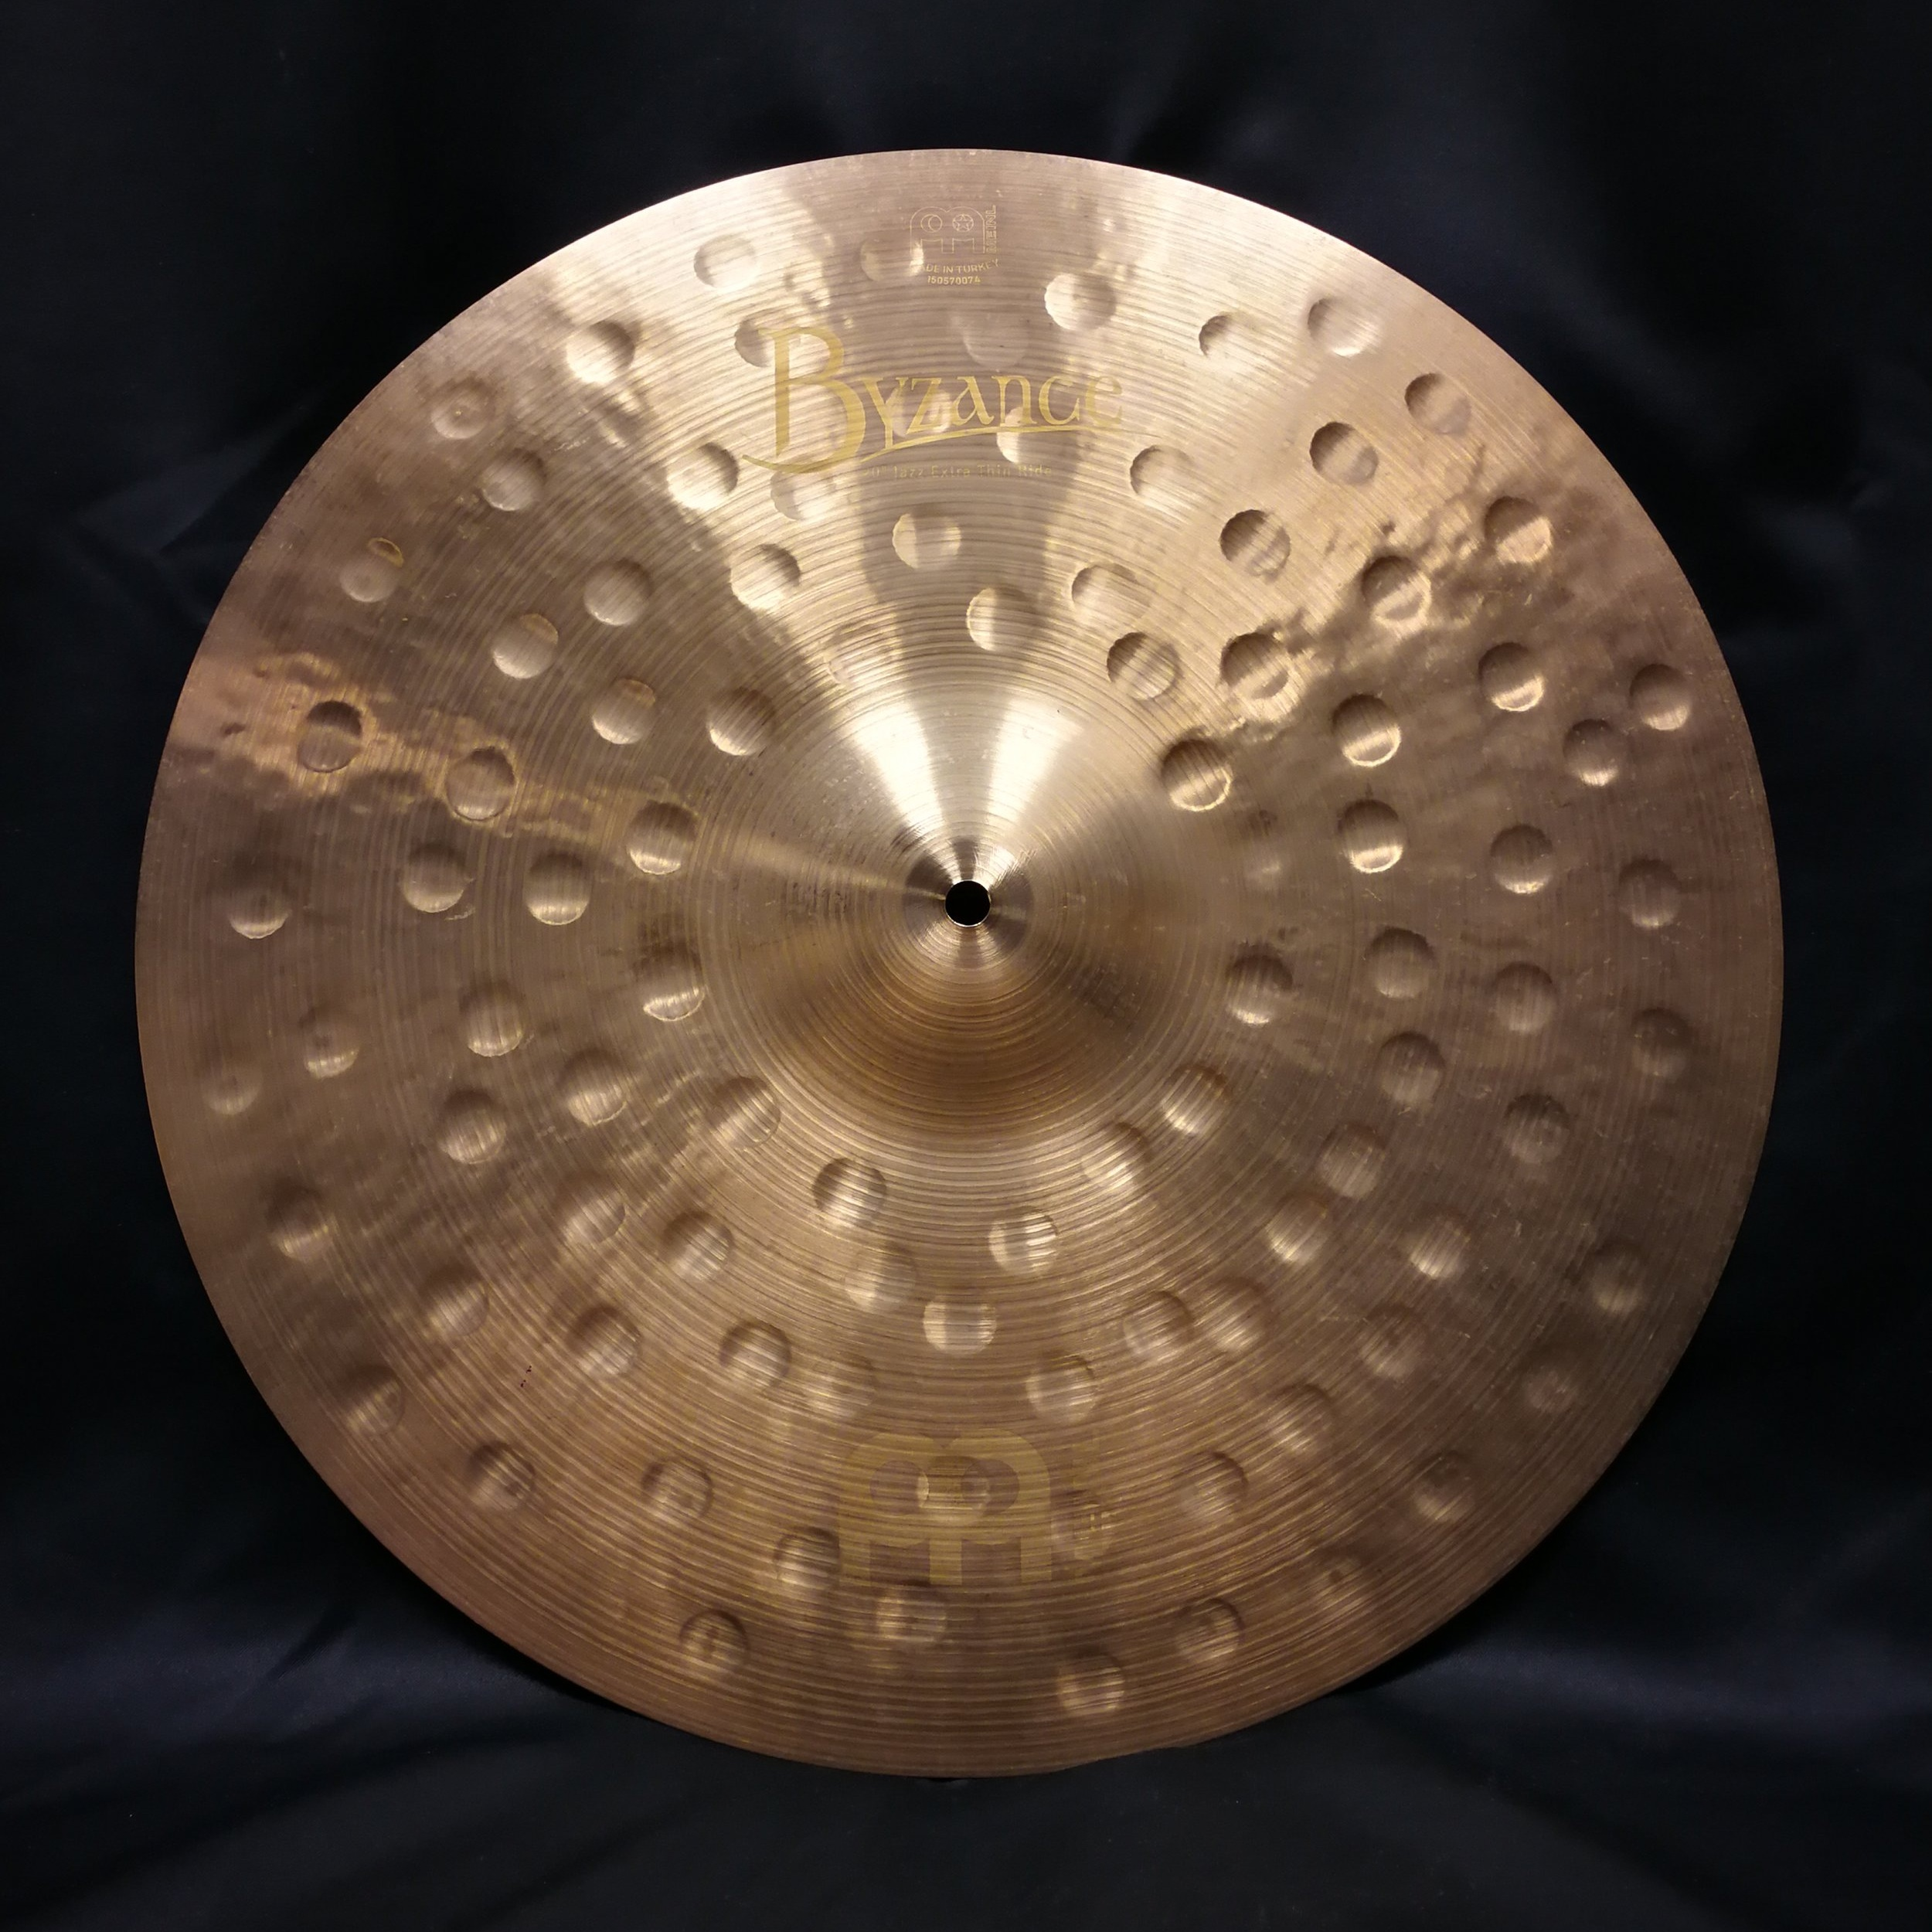 """20"""" Byzance Jazz Extra Thin Ride (used mainly as a crash)"""